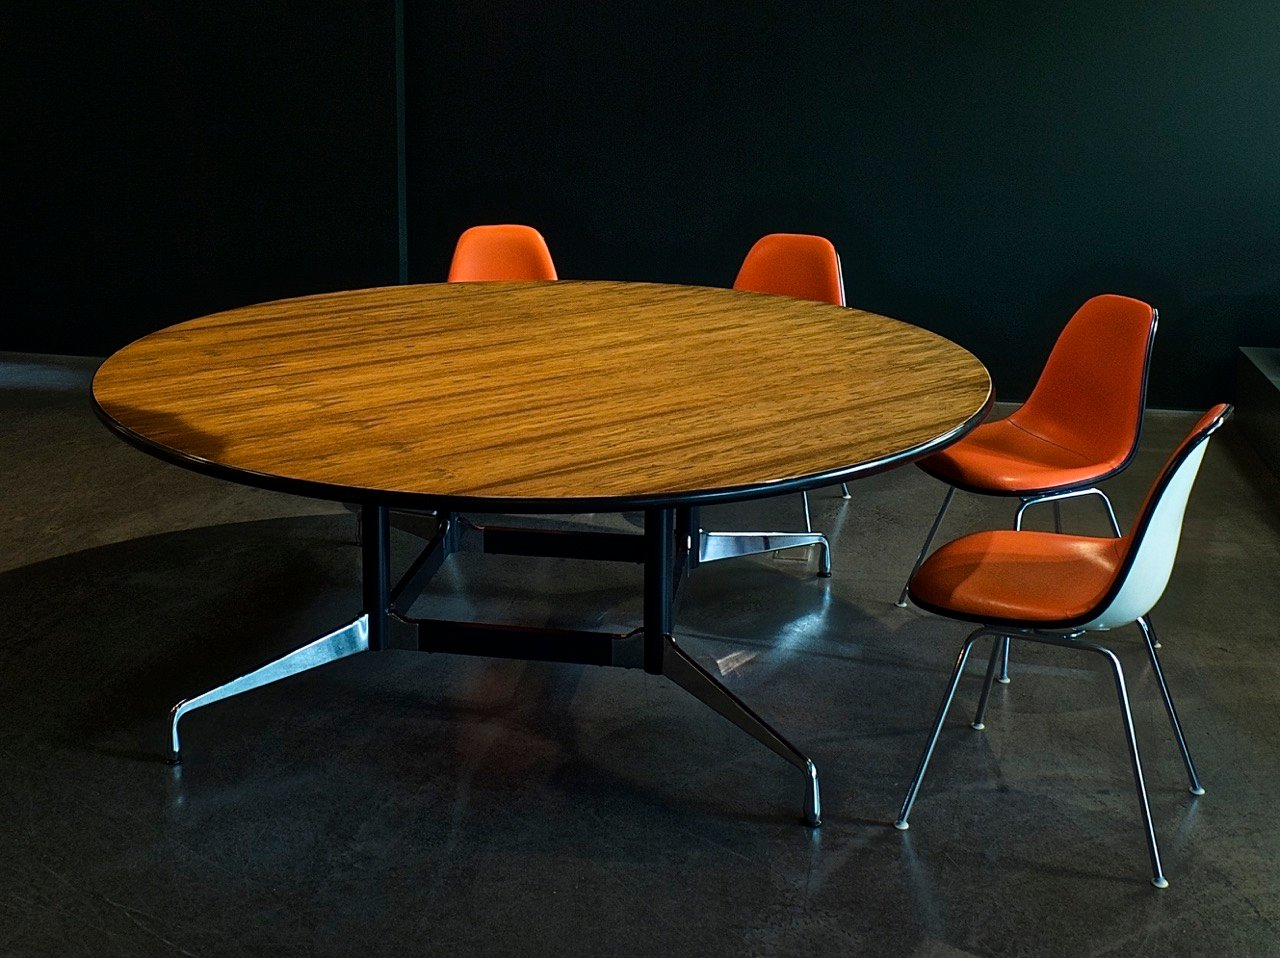 Segmented table by ray charles eames for vitra for sale for Table ronde charles eames